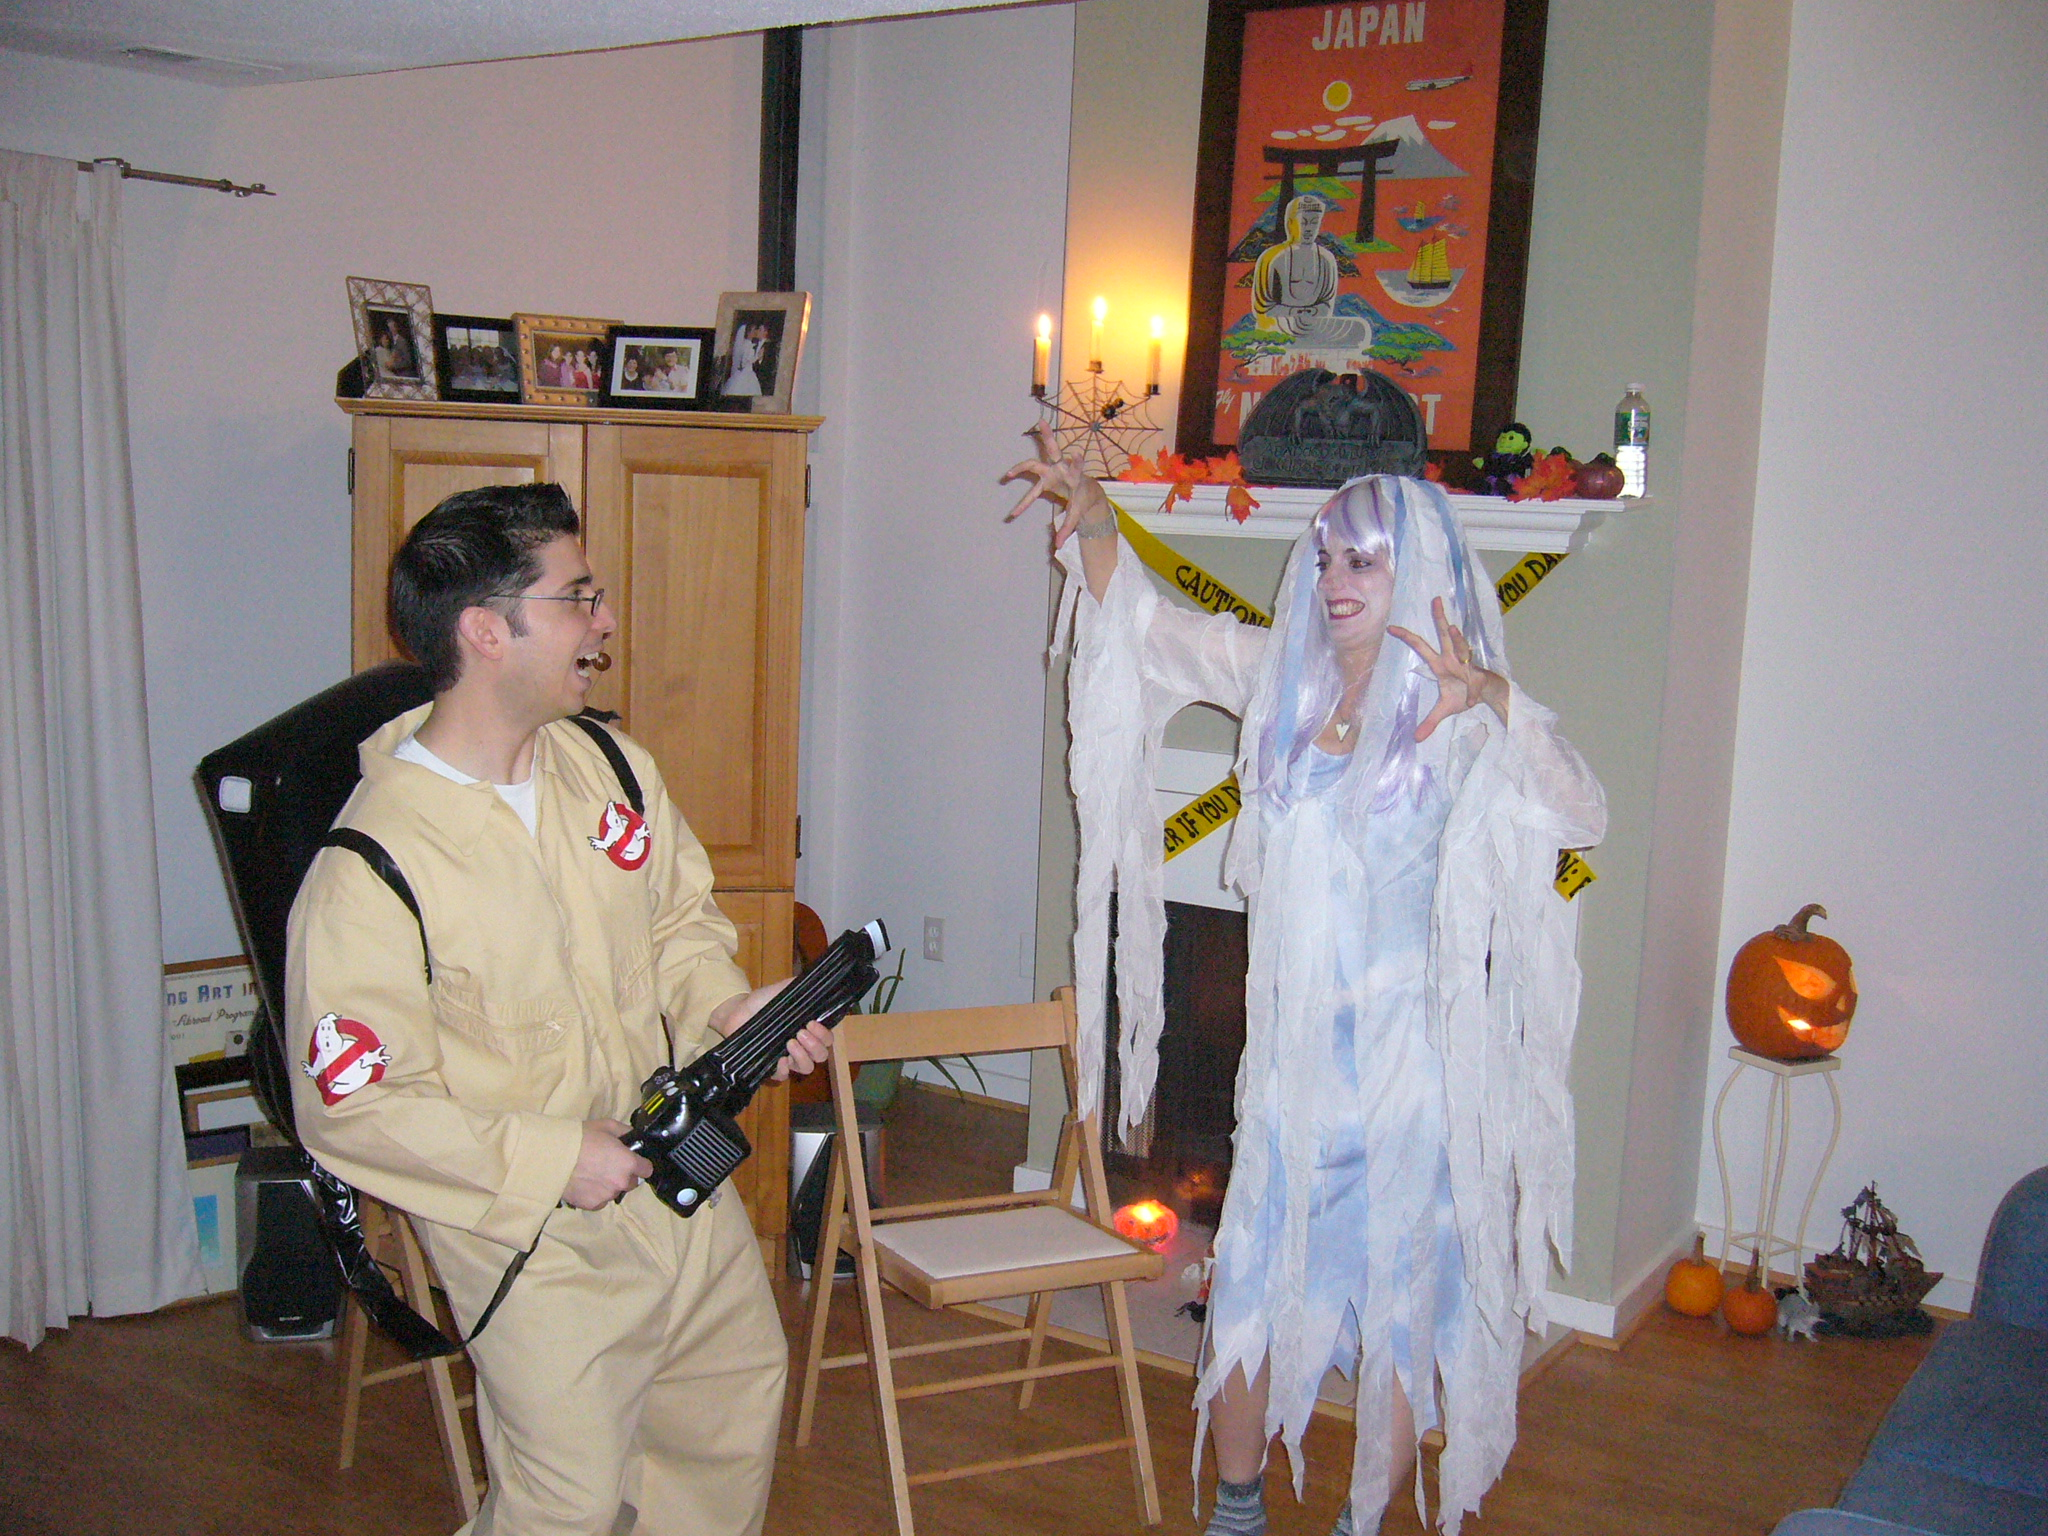 Ghostbuster busting a ghost